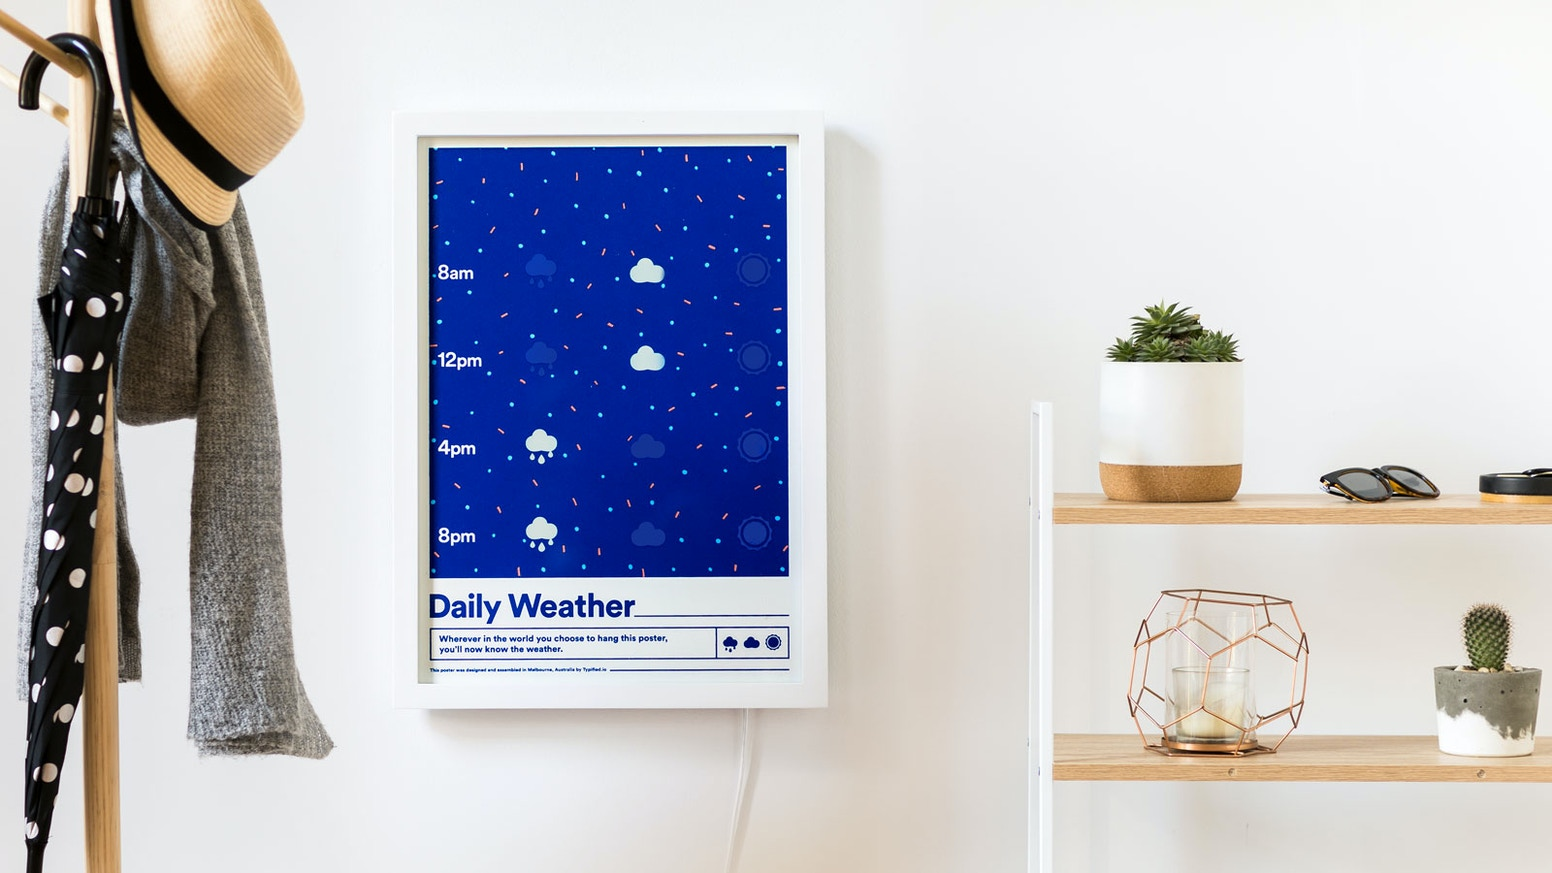 Never forget to check the weather again. This screen printed poster uses smart ink & the internet to always reflect the day's forecast.